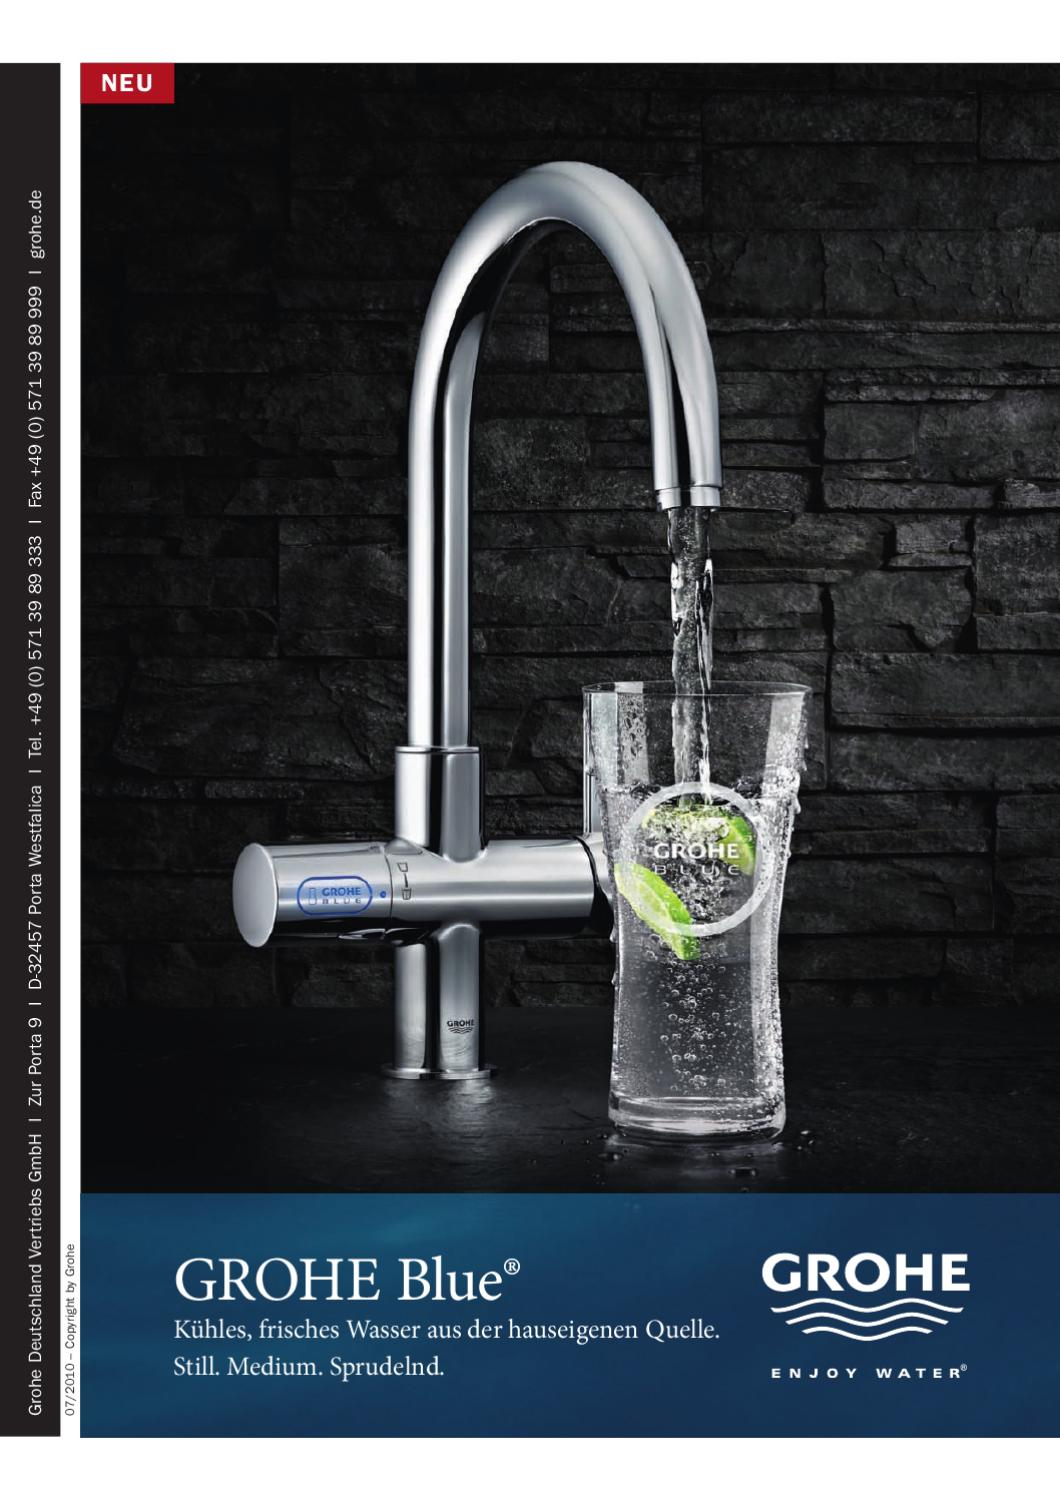 Grohe Armaturen Porta Westfalica Grohe Blue And Grohe Red By Grohe Issuu